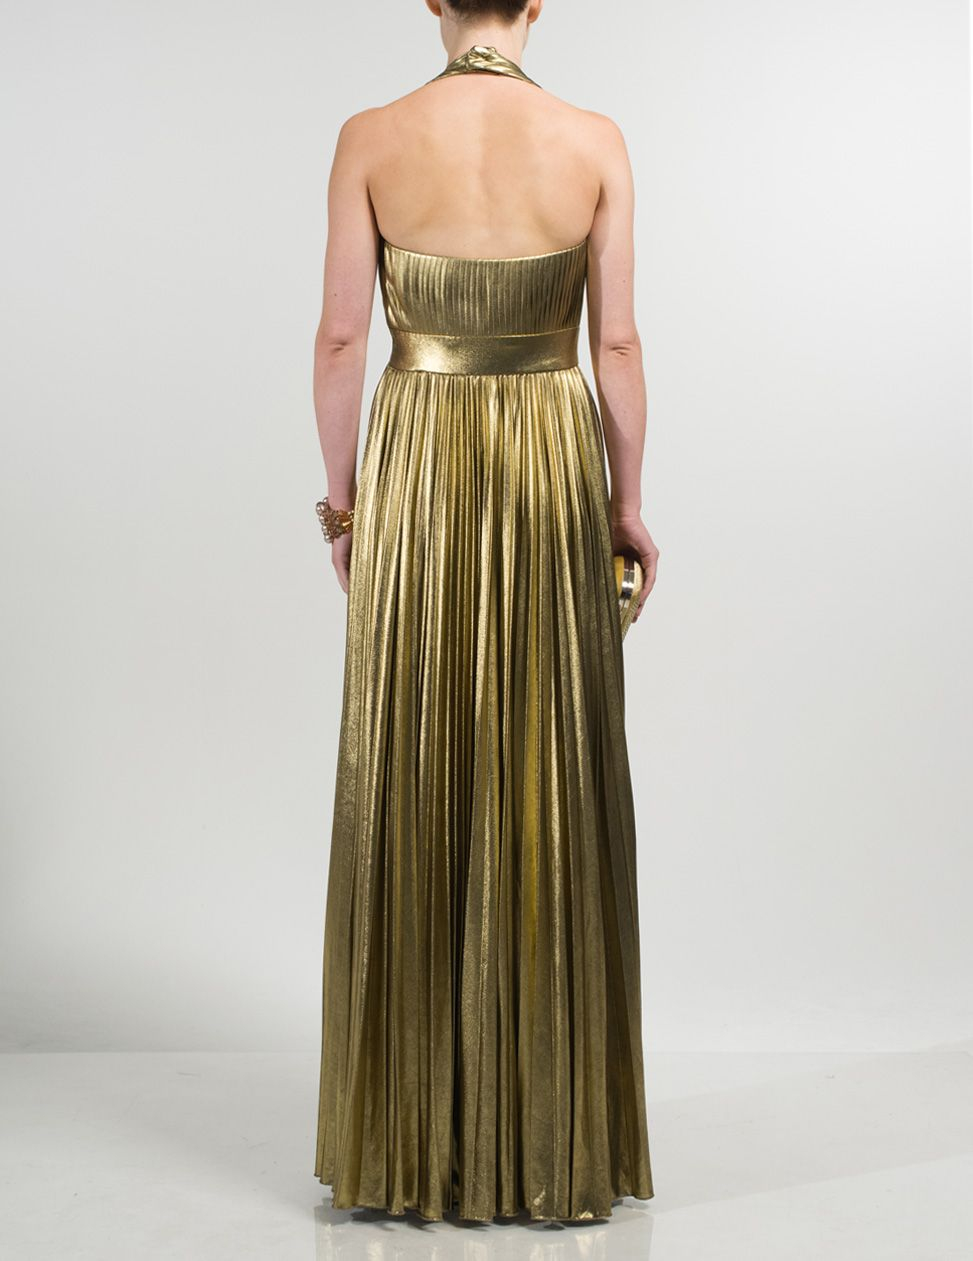 Gold halter neck maxi dress